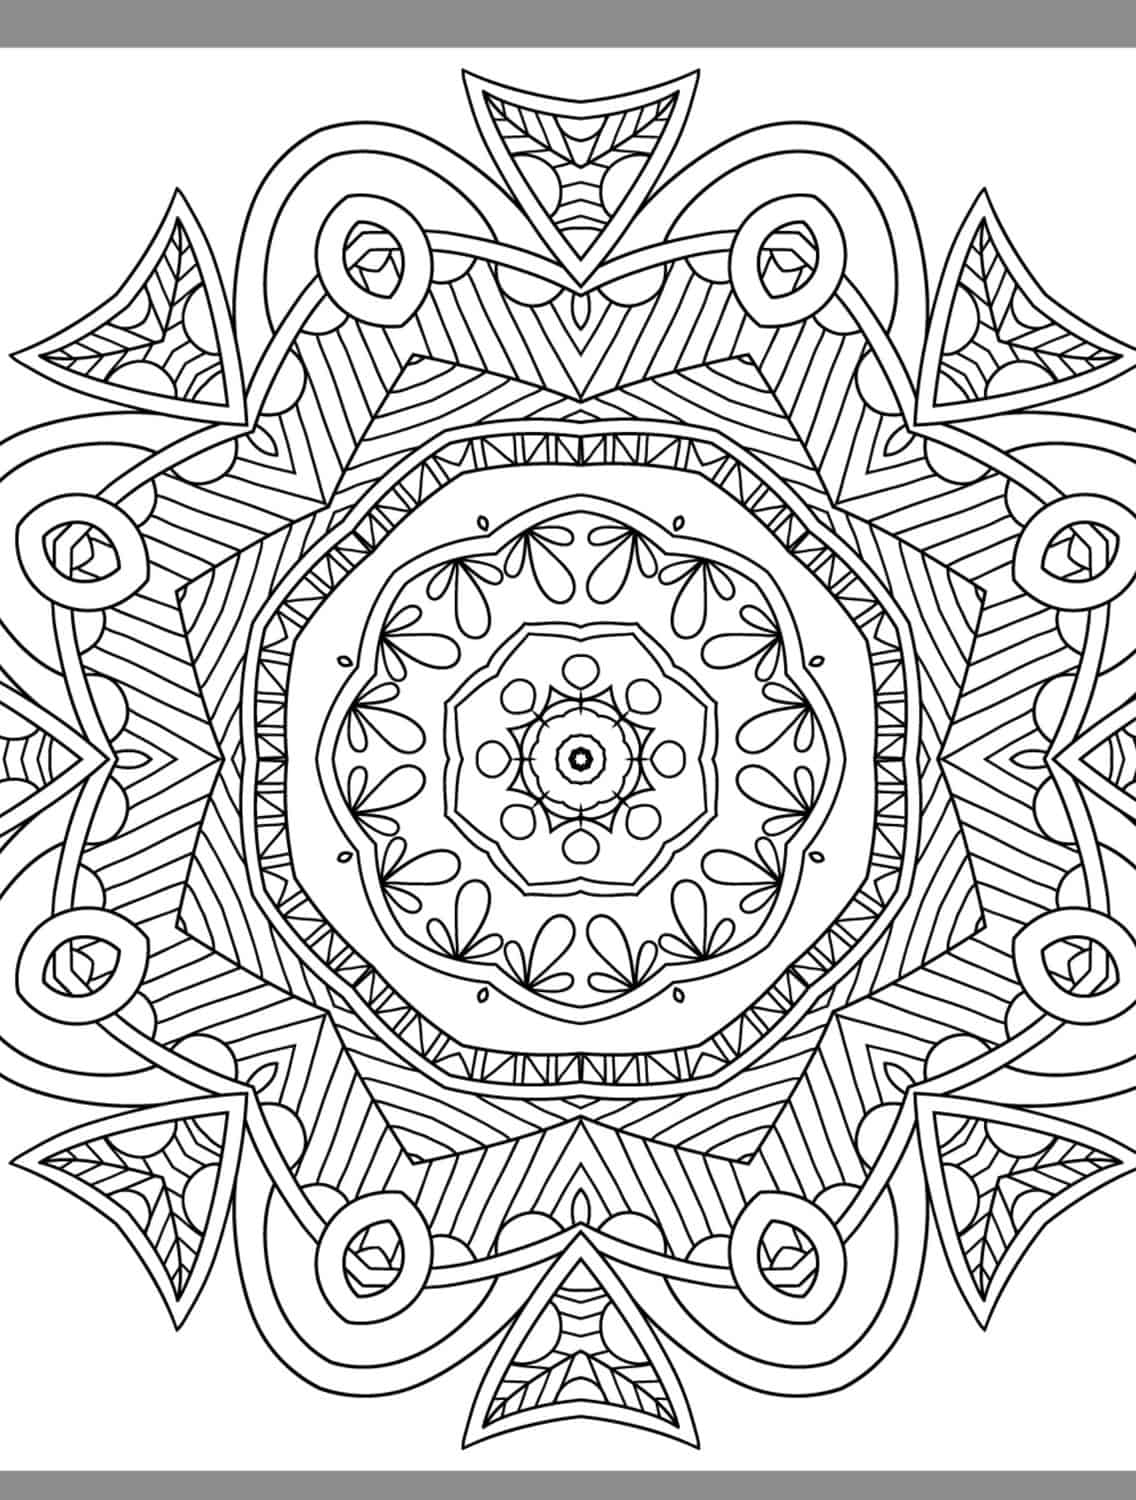 coloring adult pages free - photo#20